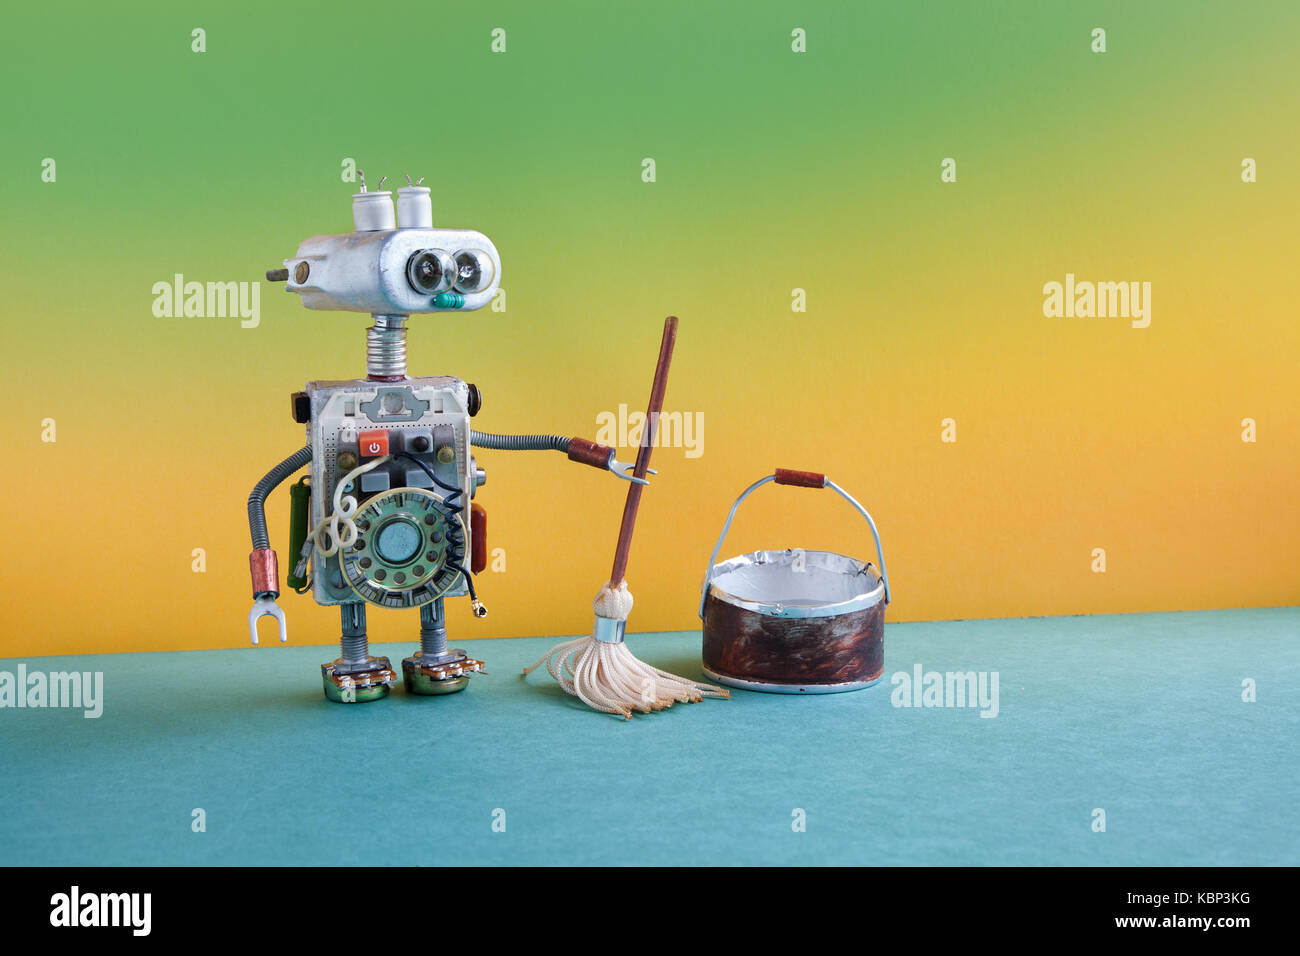 Cleaning robot stock photos cleaning robot stock images alamy cleaning room service concept robotic washer with mop and bucket of water mopping floor ccuart Choice Image